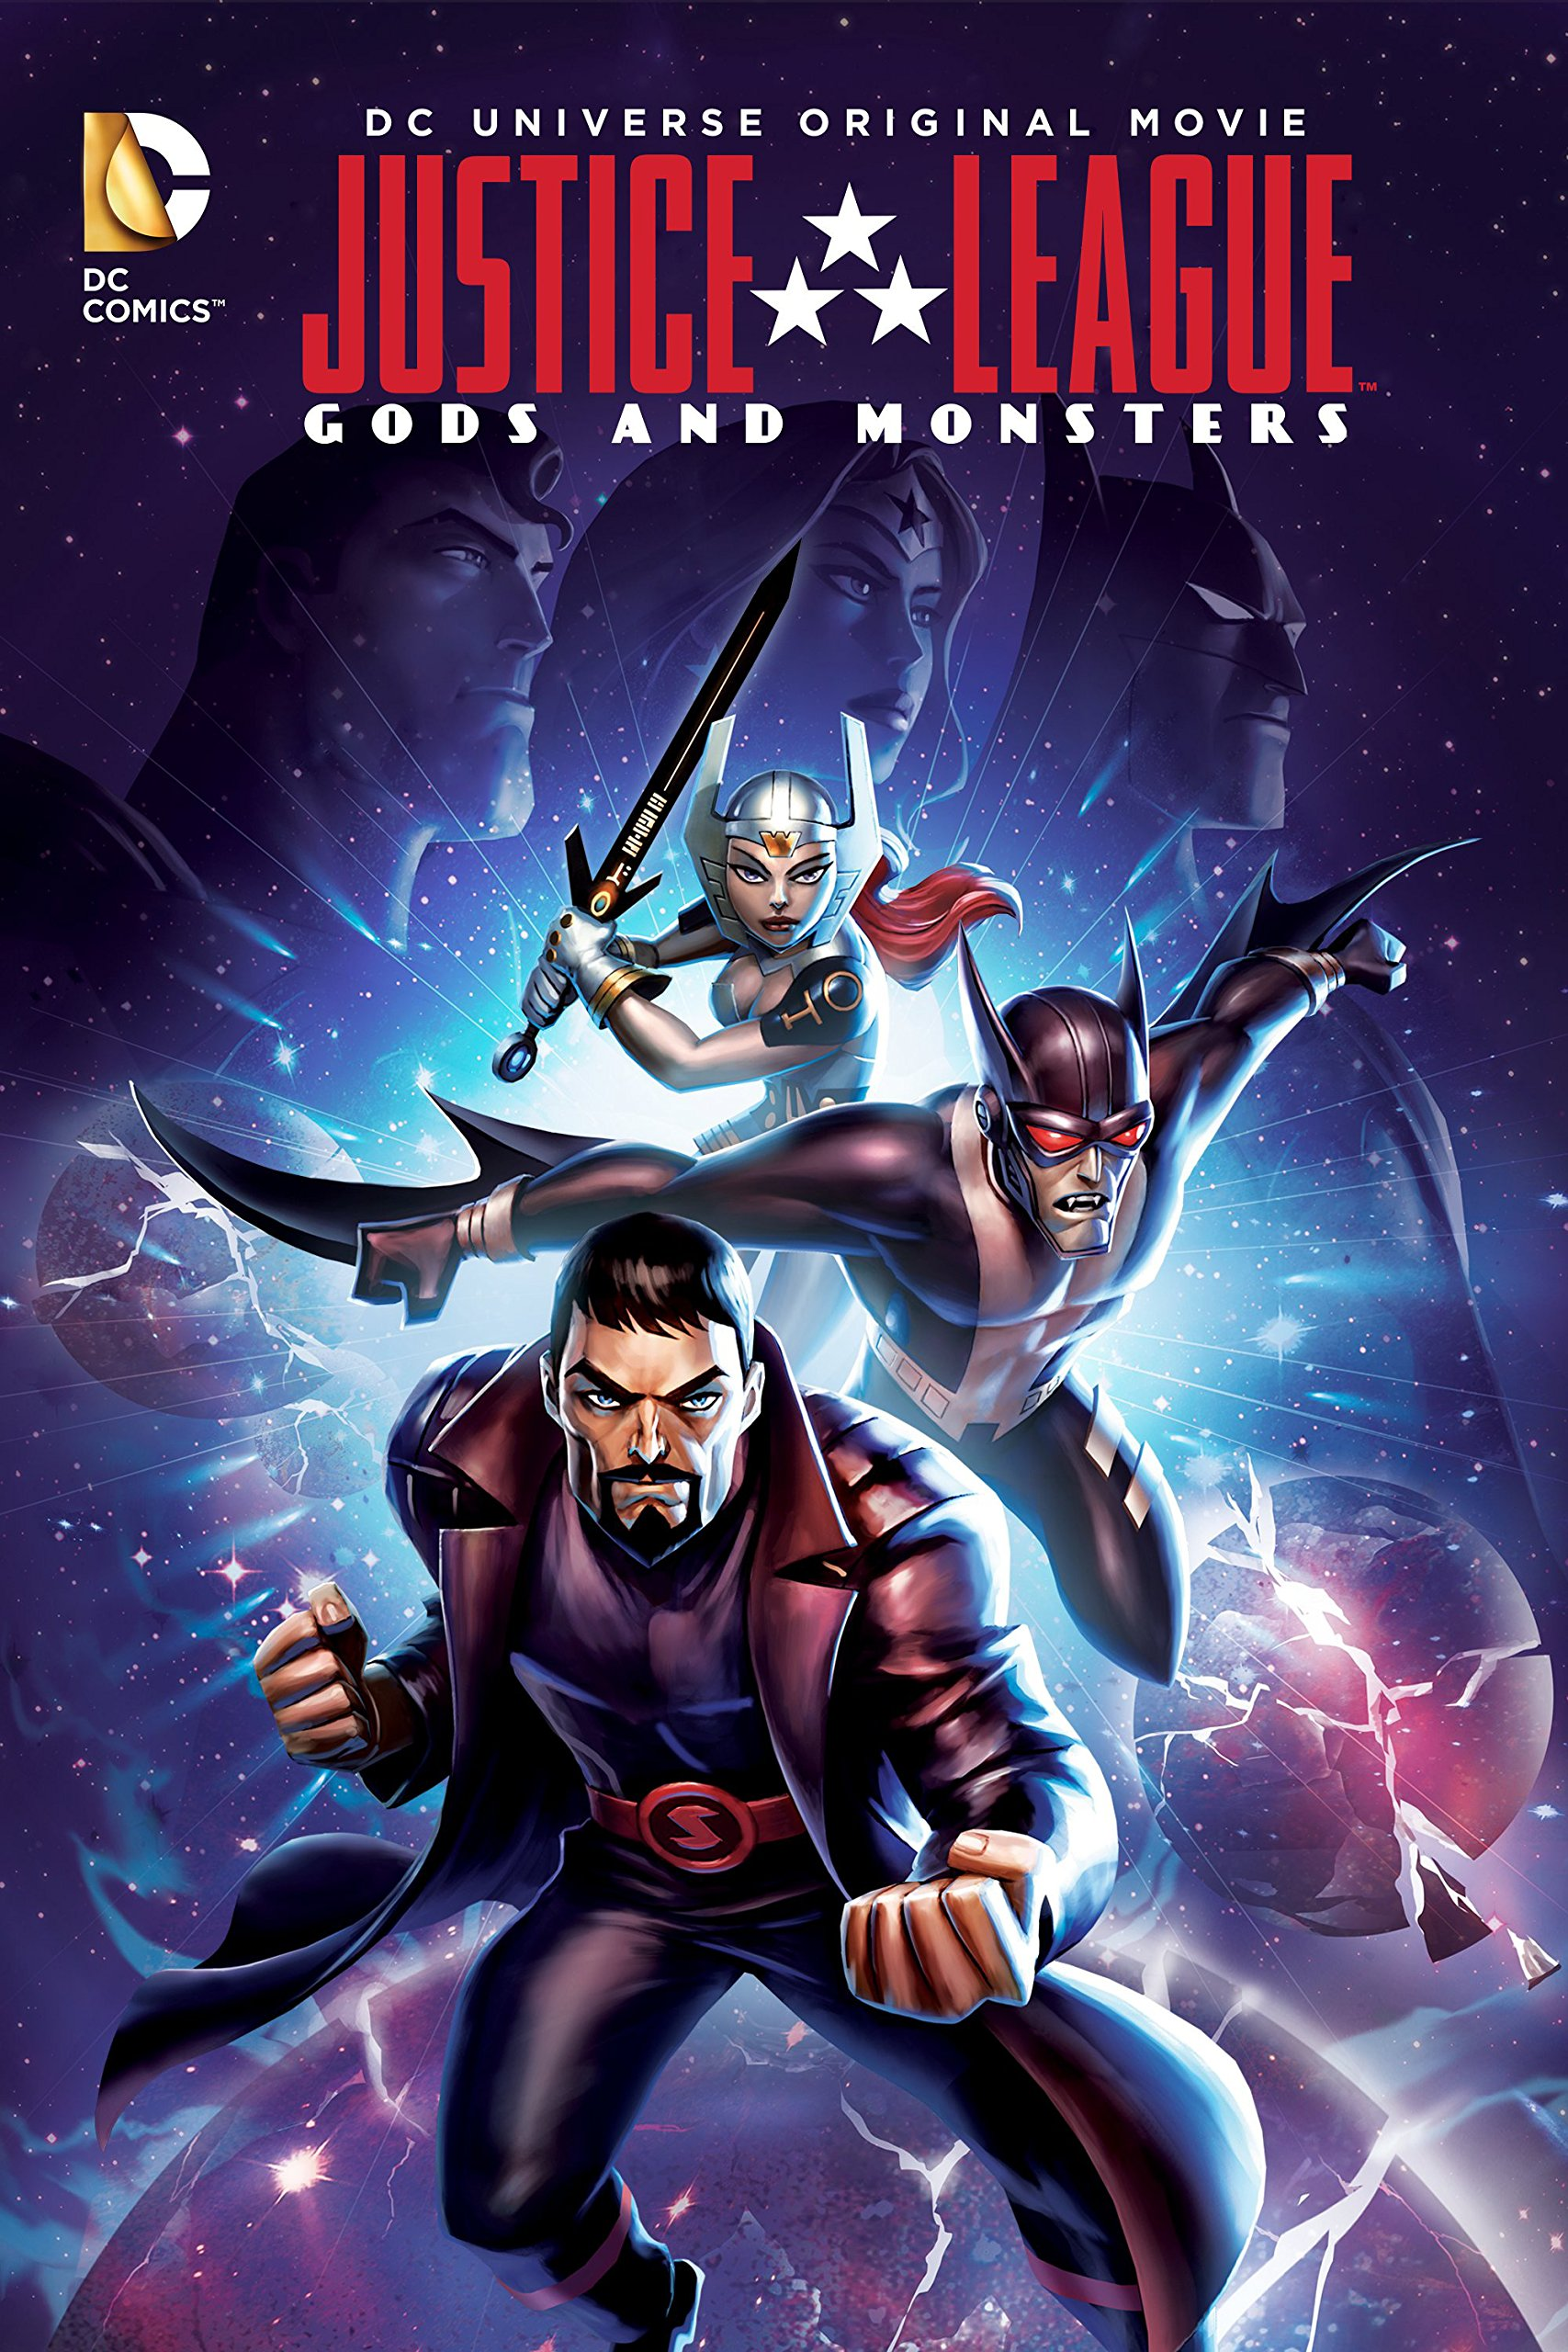 Justice League: Gods and Monsters (2015) BluRay 720p & 1080p